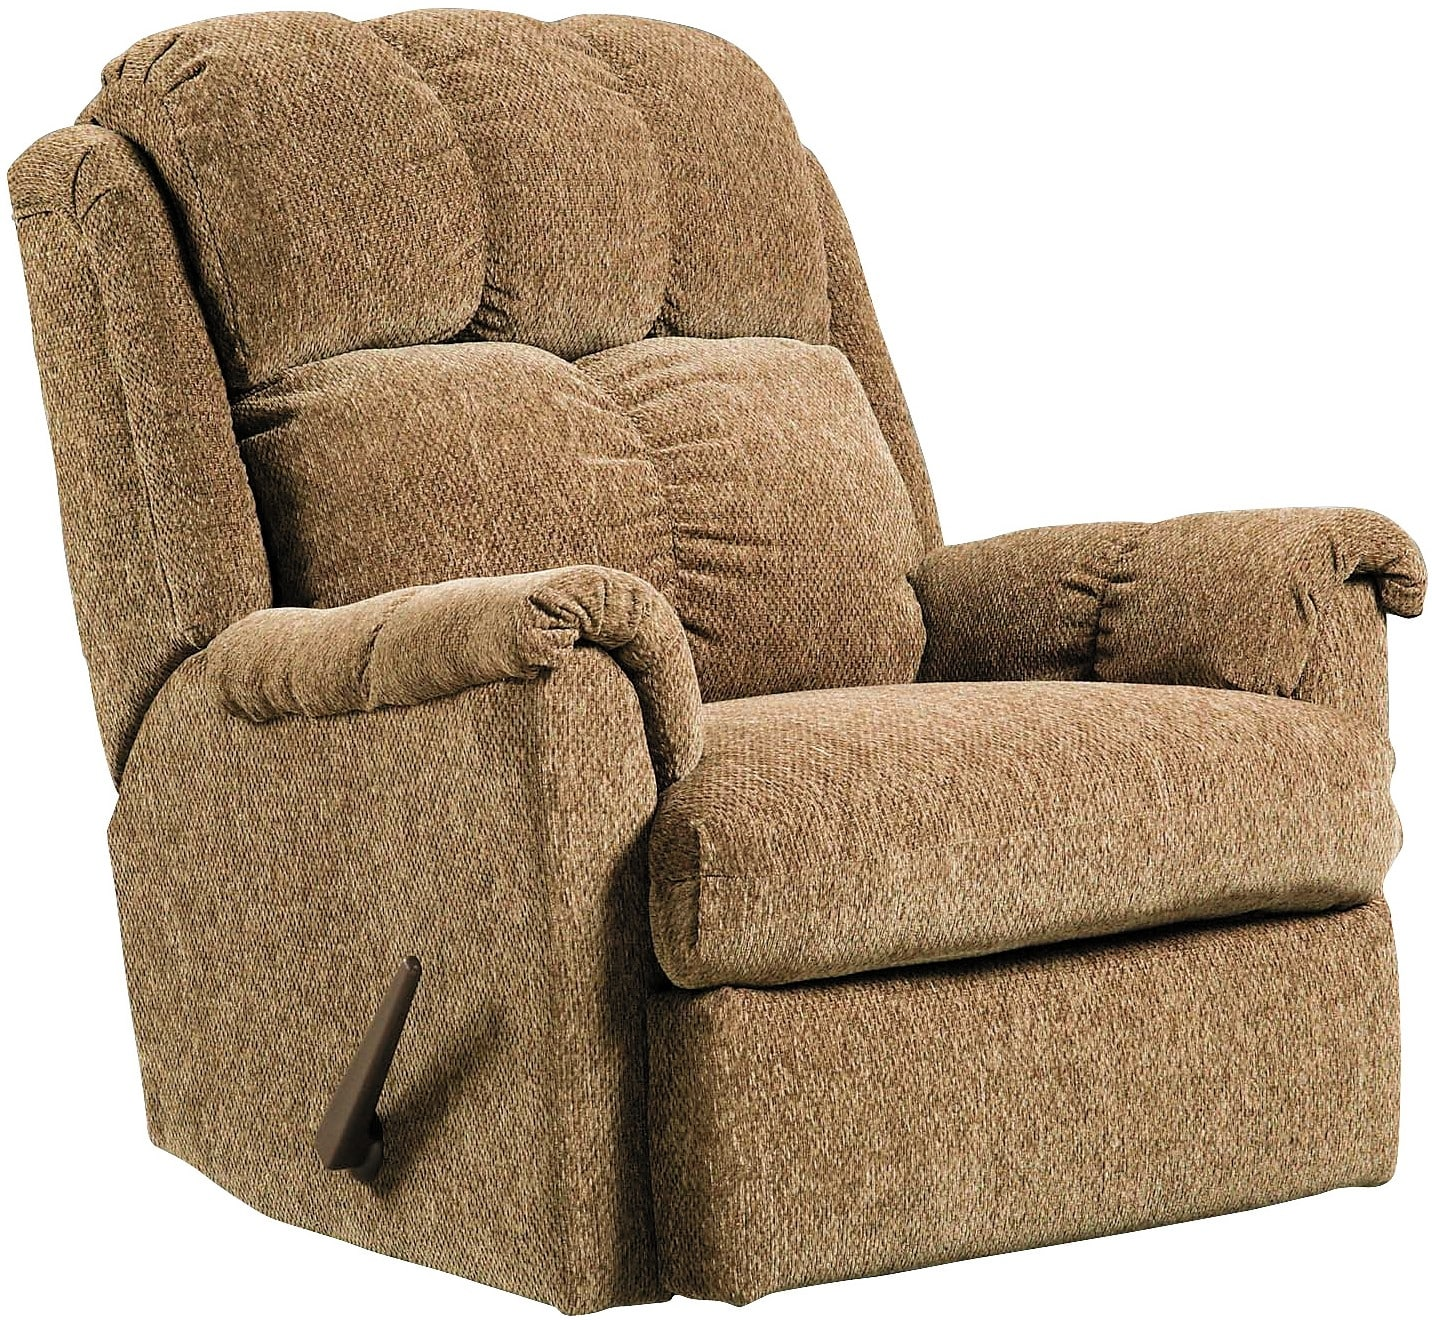 Electric Rocking Chair Brown Chenille Rocker Recliner The Brick